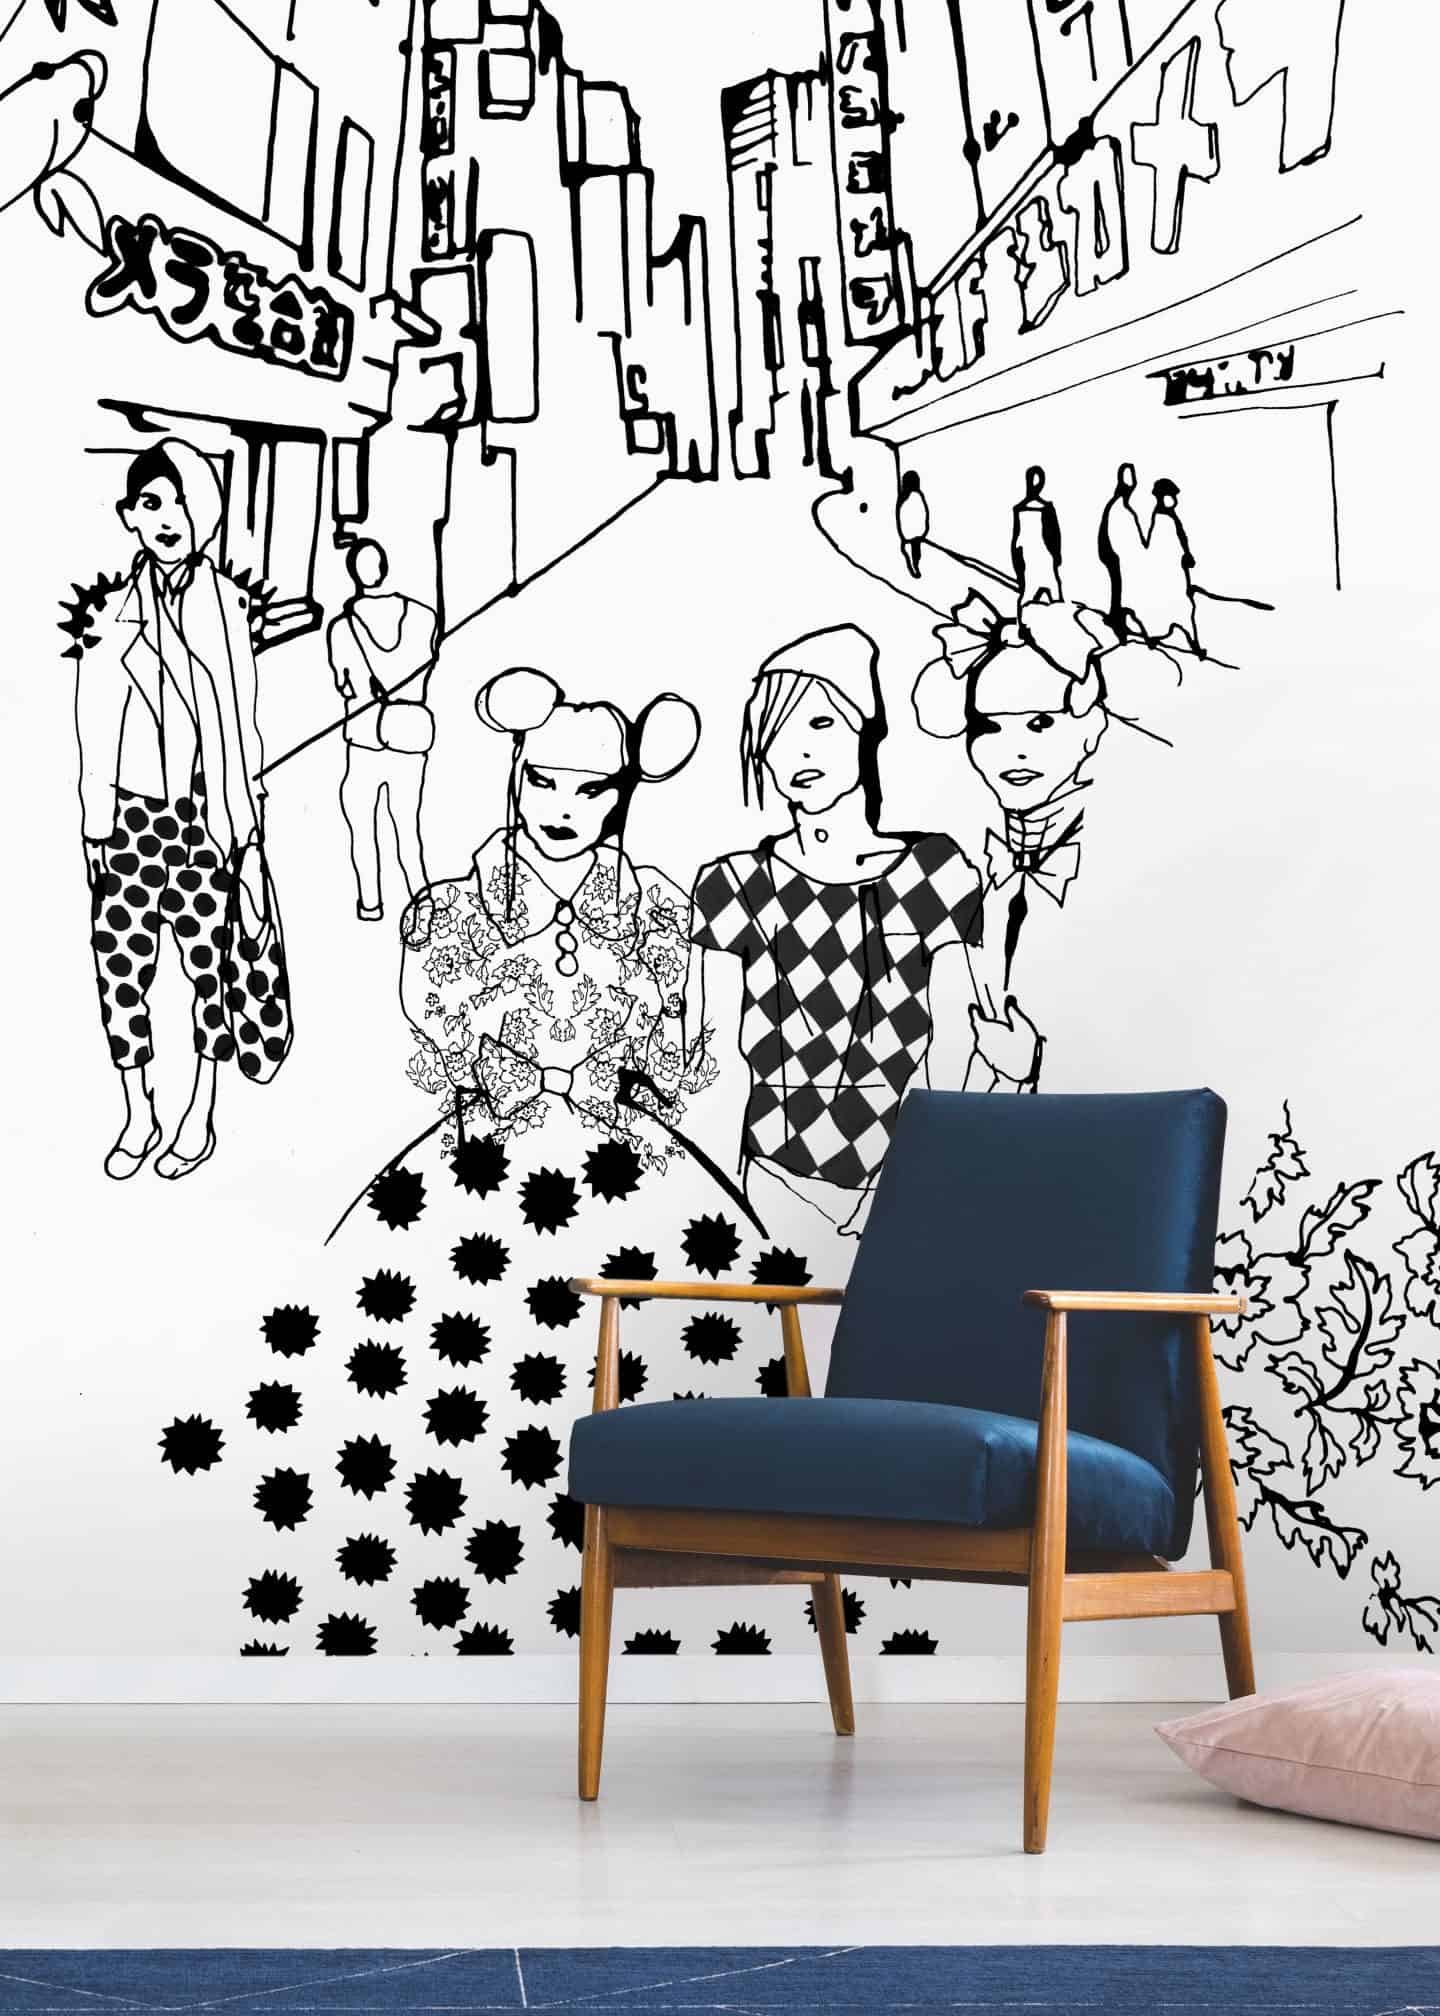 Tokyo, a black and white travel-inspired illustration by Stina Wirsén available as a illustrated wallpaper from Photowall.